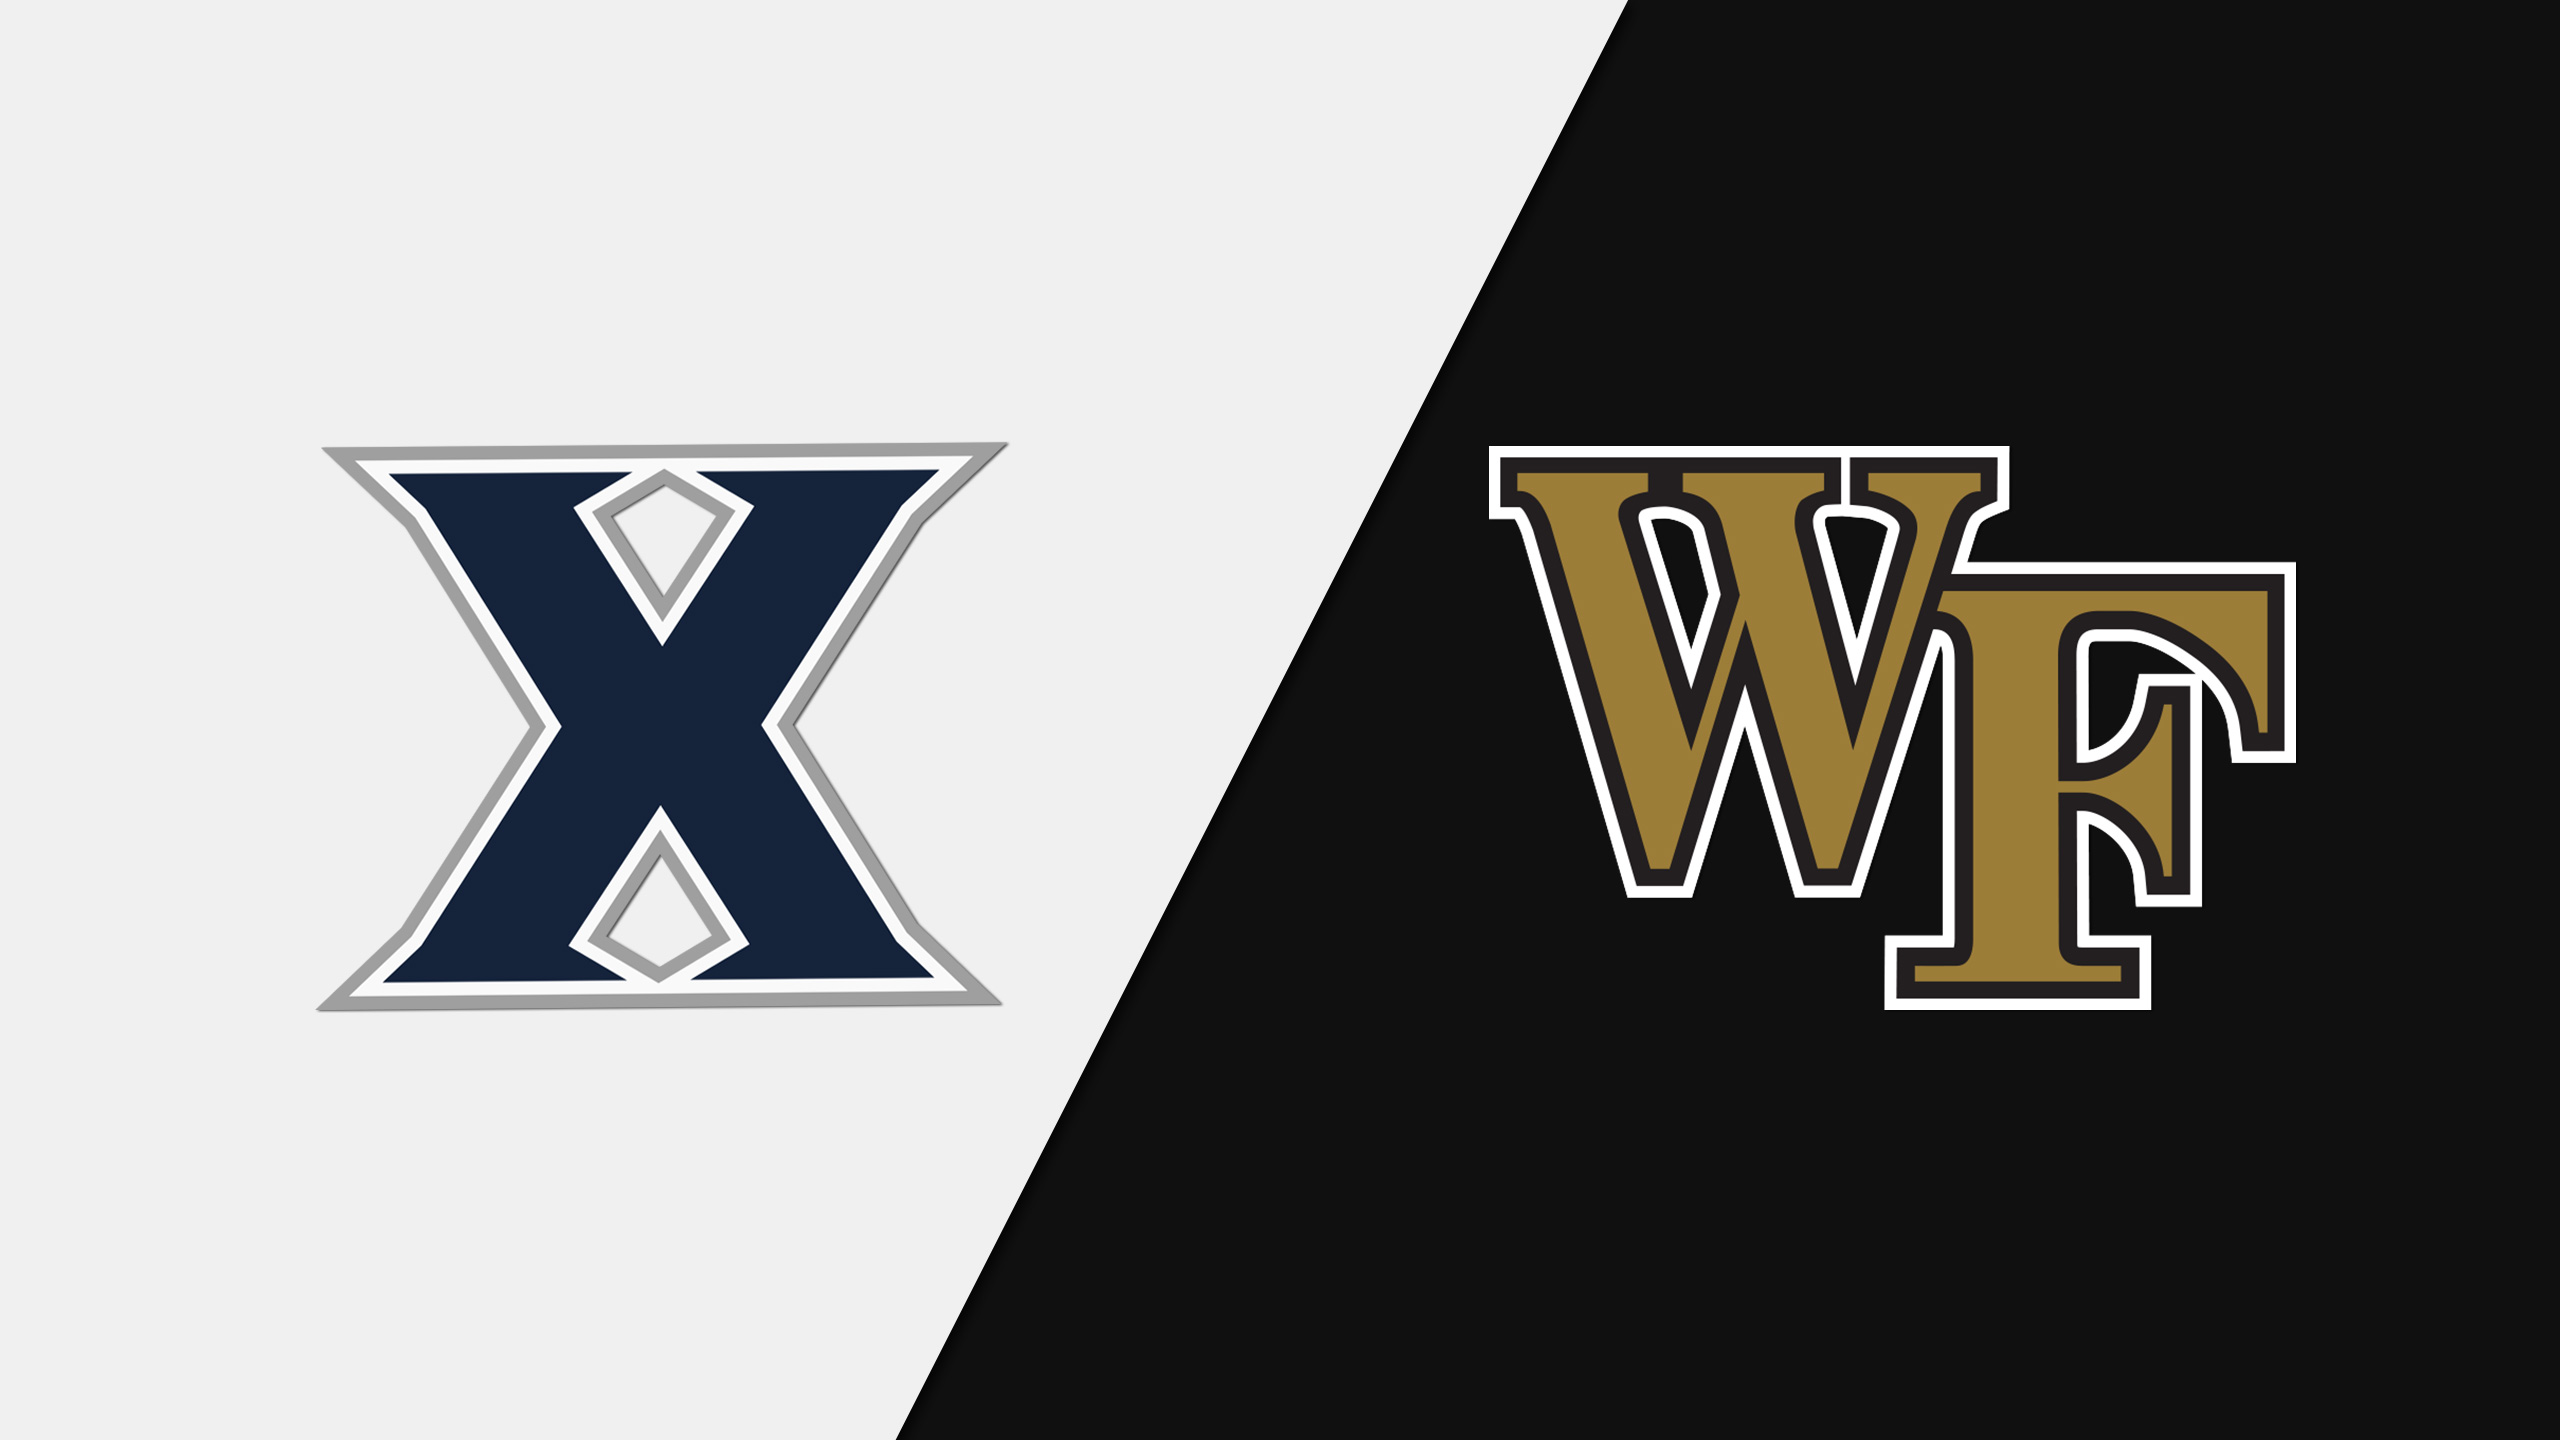 Xavier vs. Wake Forest